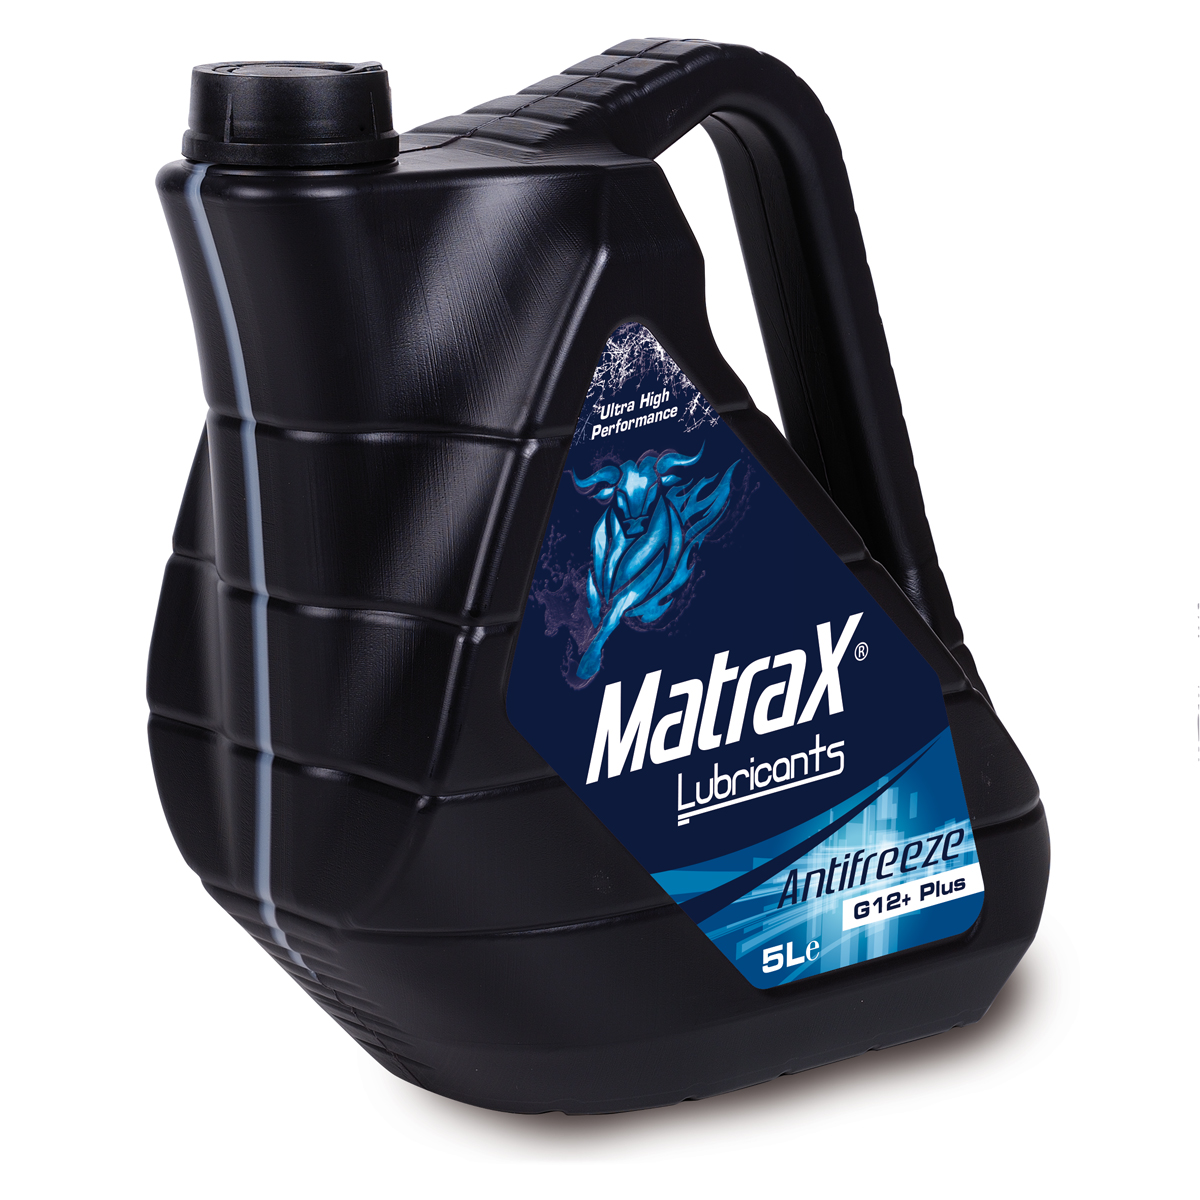 matrax-lubricants-antifreeze-g12-mas-plus-5l